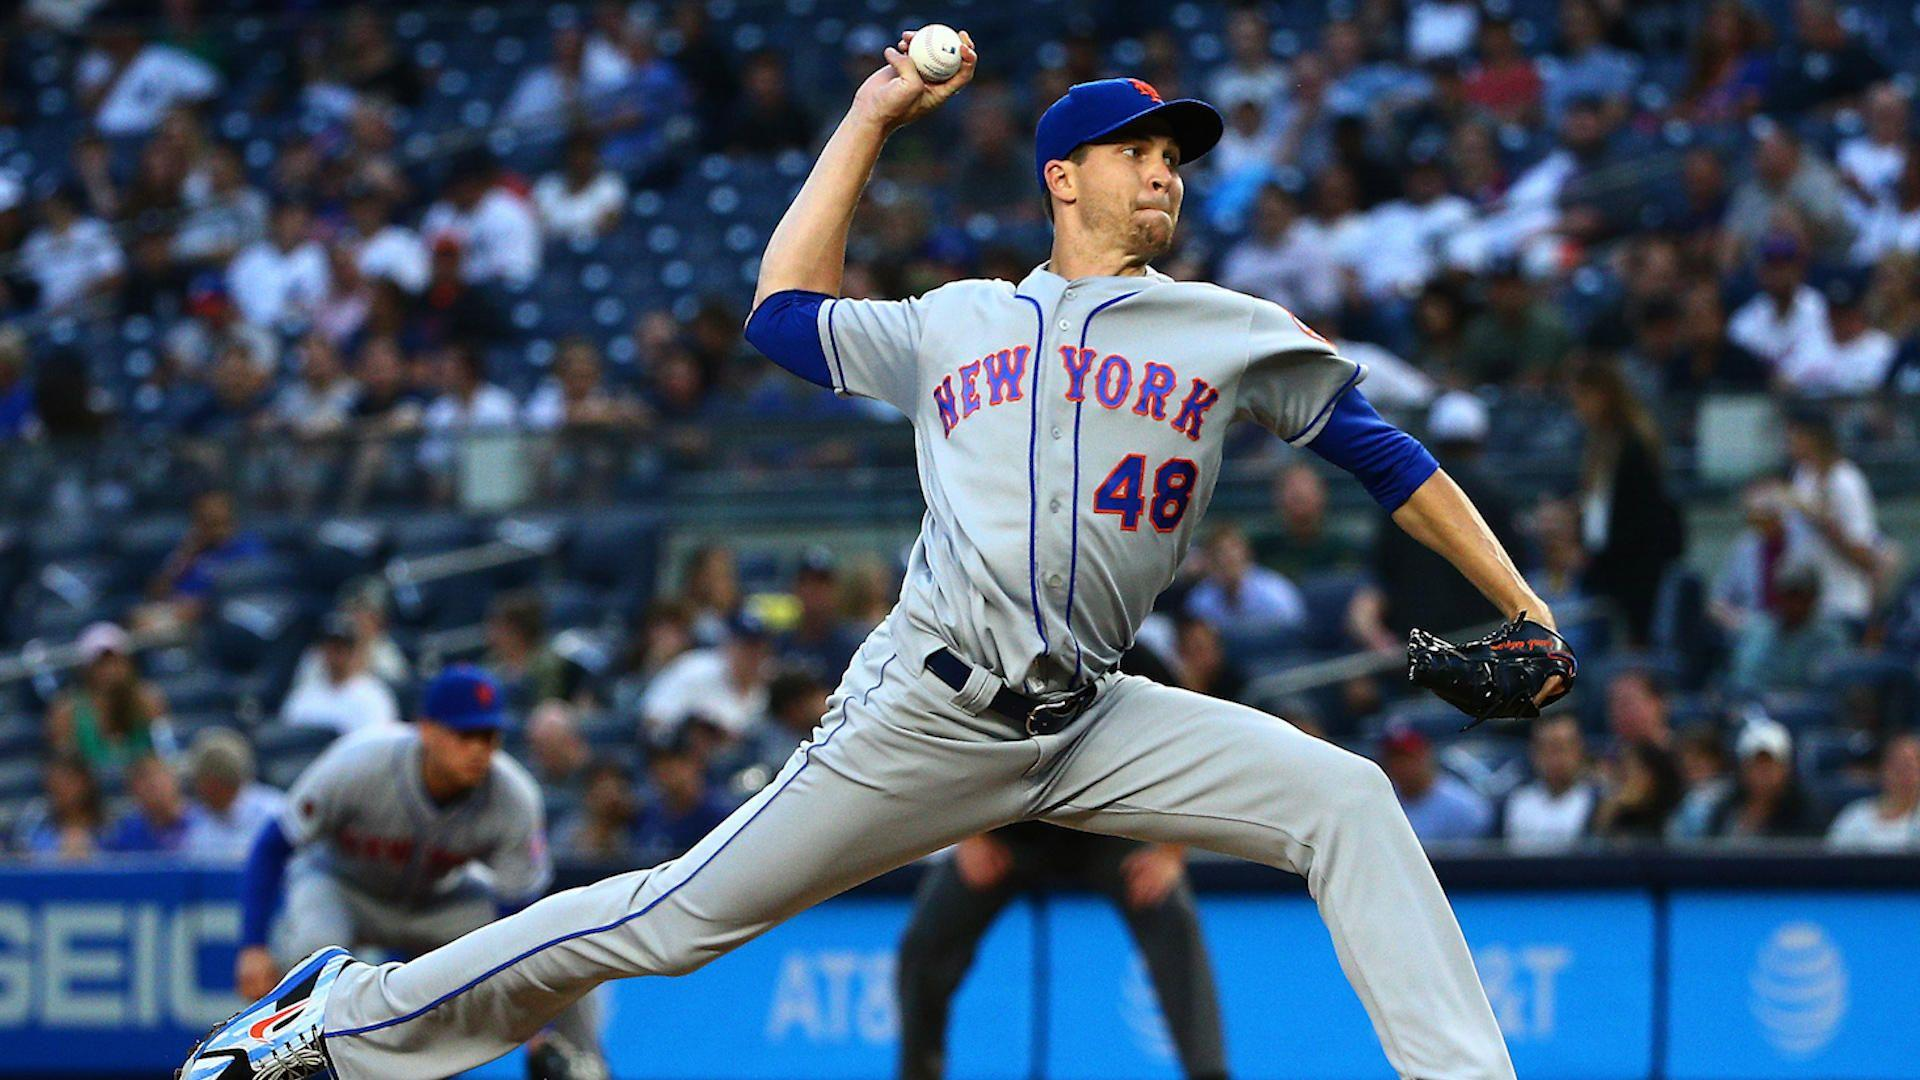 Should deGrom be the NL Cy Young favorite?